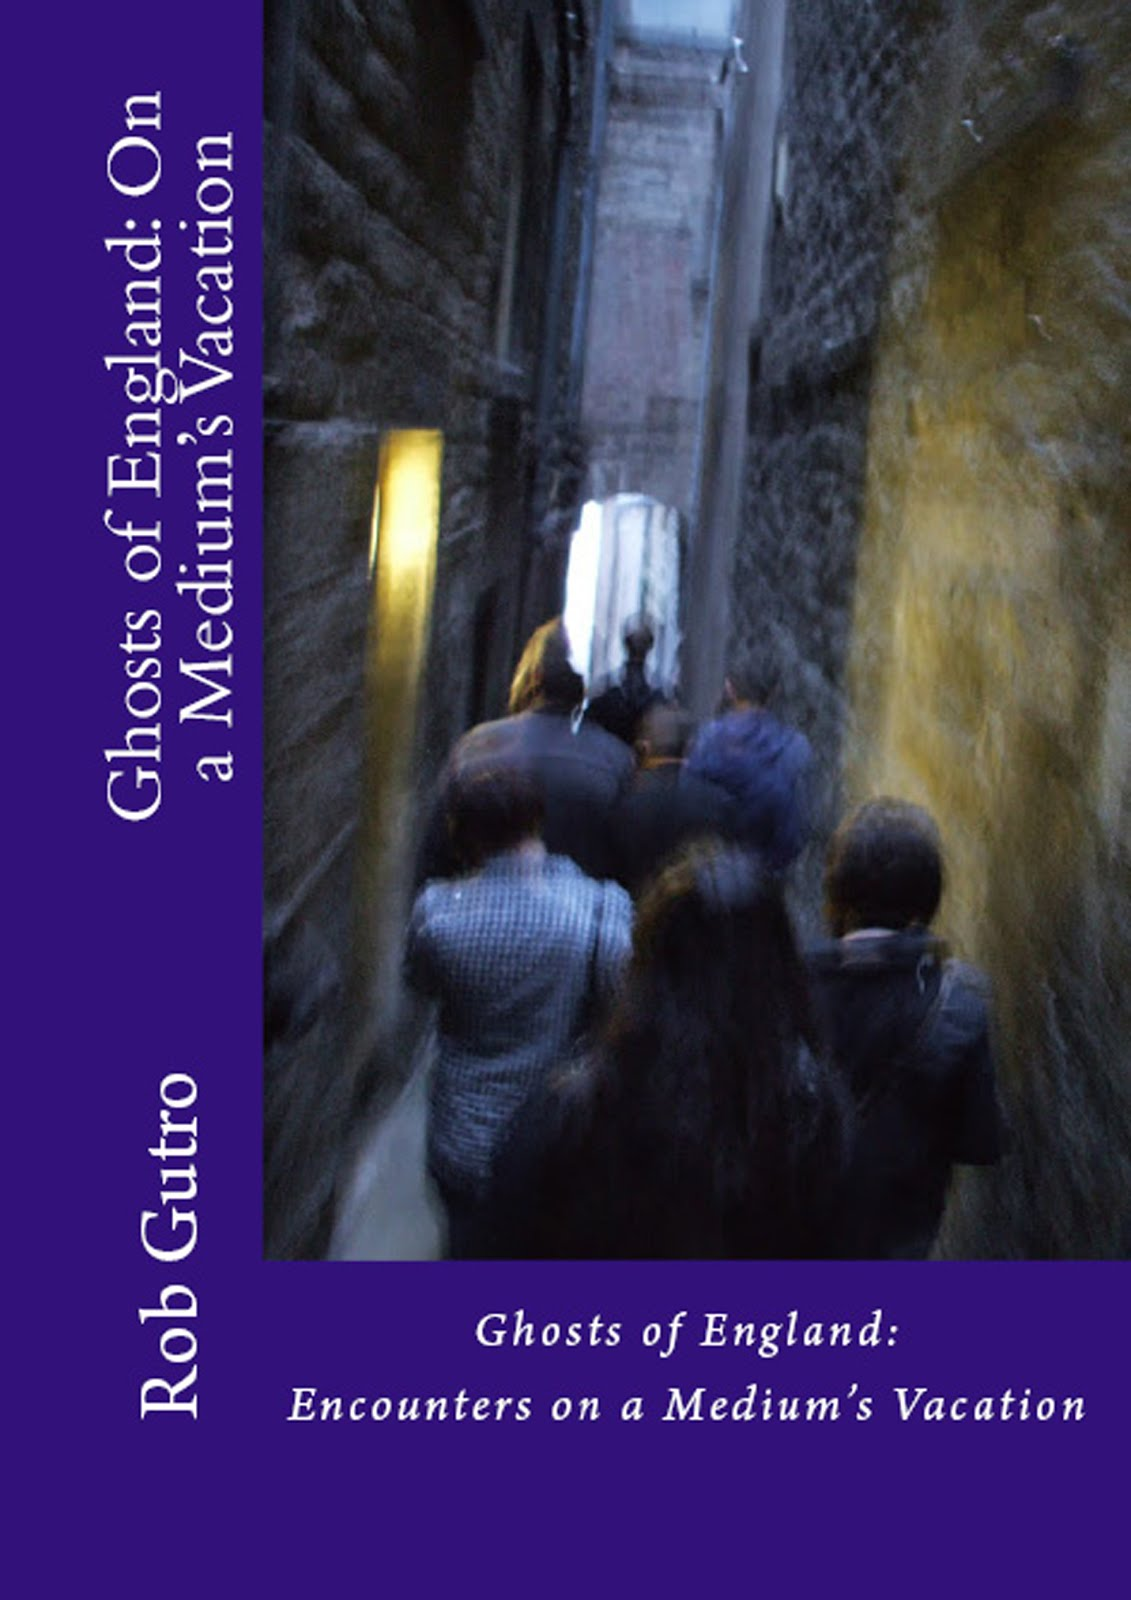 Ghosts of England: On a Medium's Vacation